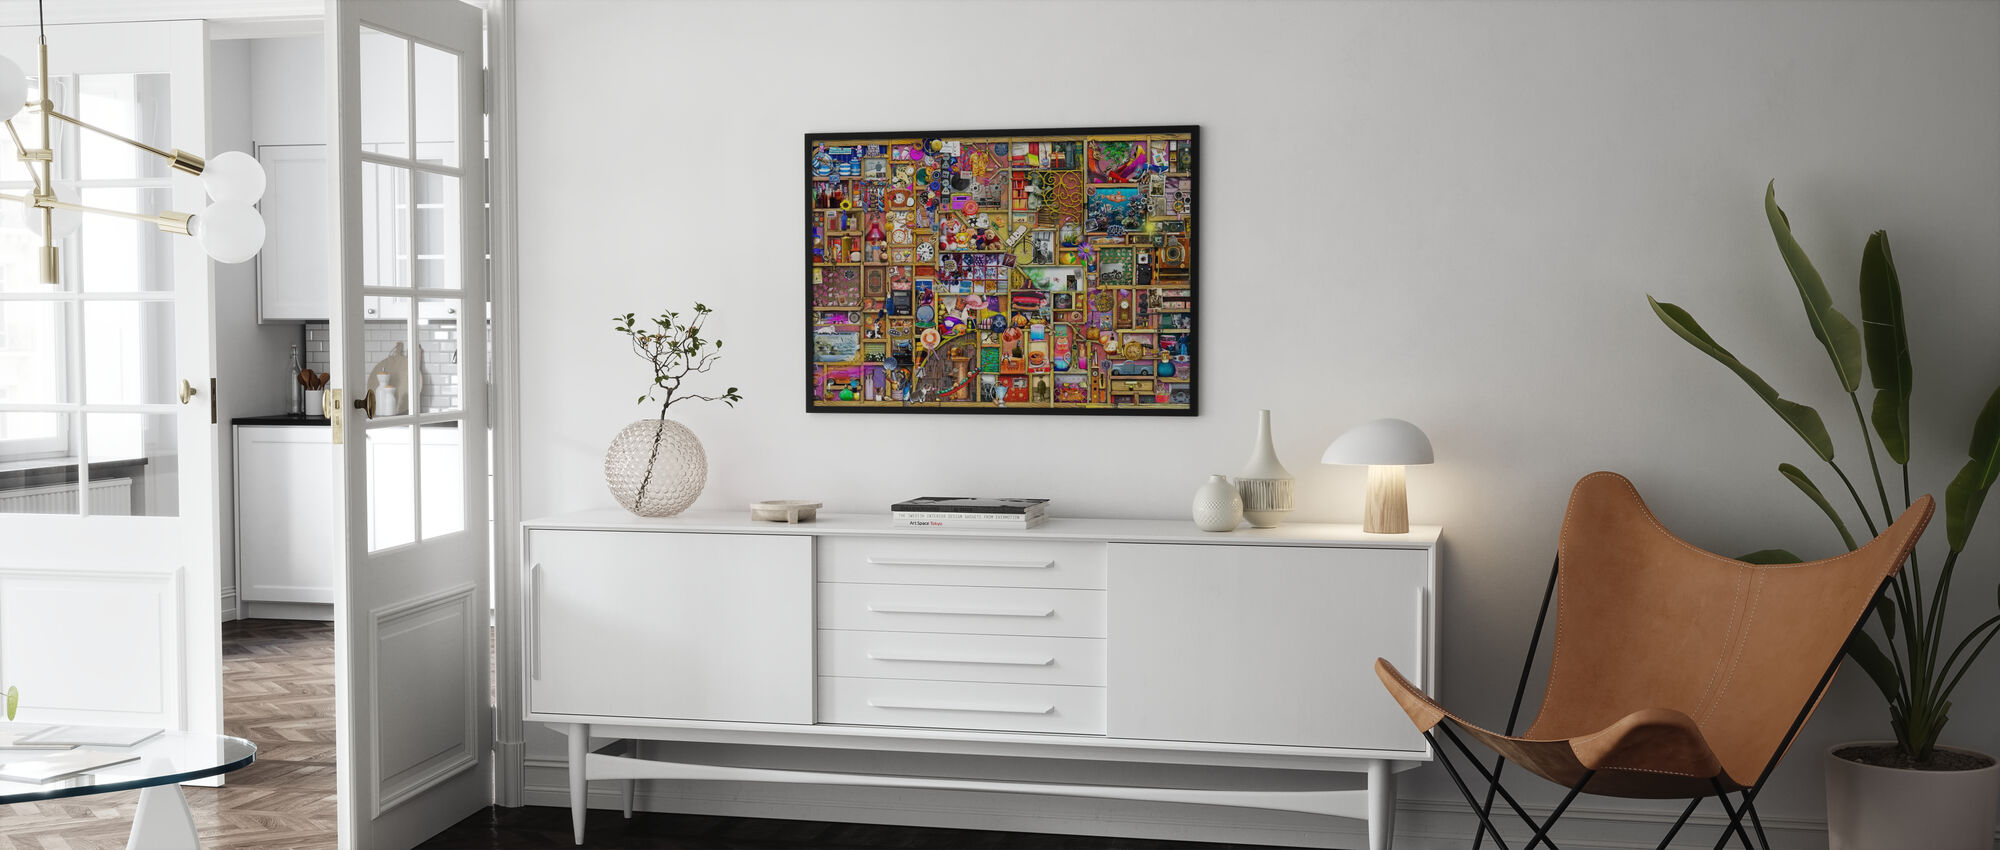 The Collectors Cupboard - Framed print - Living Room